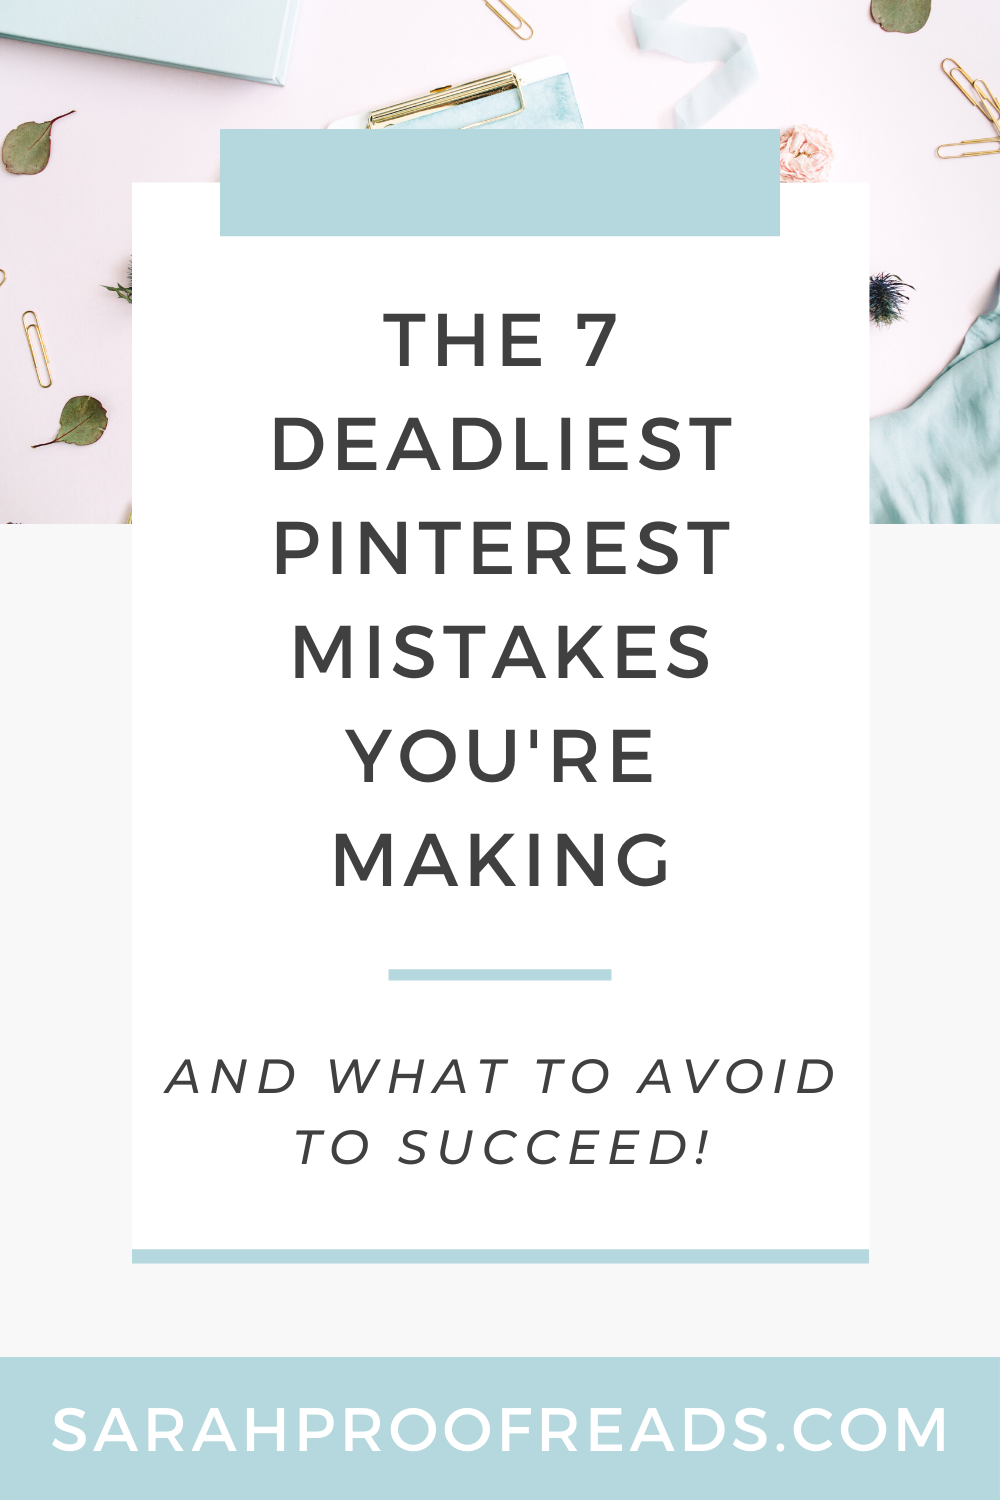 If your pins aren't getting any traction, you may be making one of these deadly Pinterest mistakes! Read this to learn what you need to avoid in order to succeed with Pinterest! Pinterest marketing | Tailwind | Pinterest marketing tips | Pinterest mistakes | Pinterest marketing strategy | viral pins | Pinterest marketing course | Canva design | blogging tips | how to grow Pinterest | blogging tips for beginners | blog marketing | blogging for business | social media marketing tips #viralpins